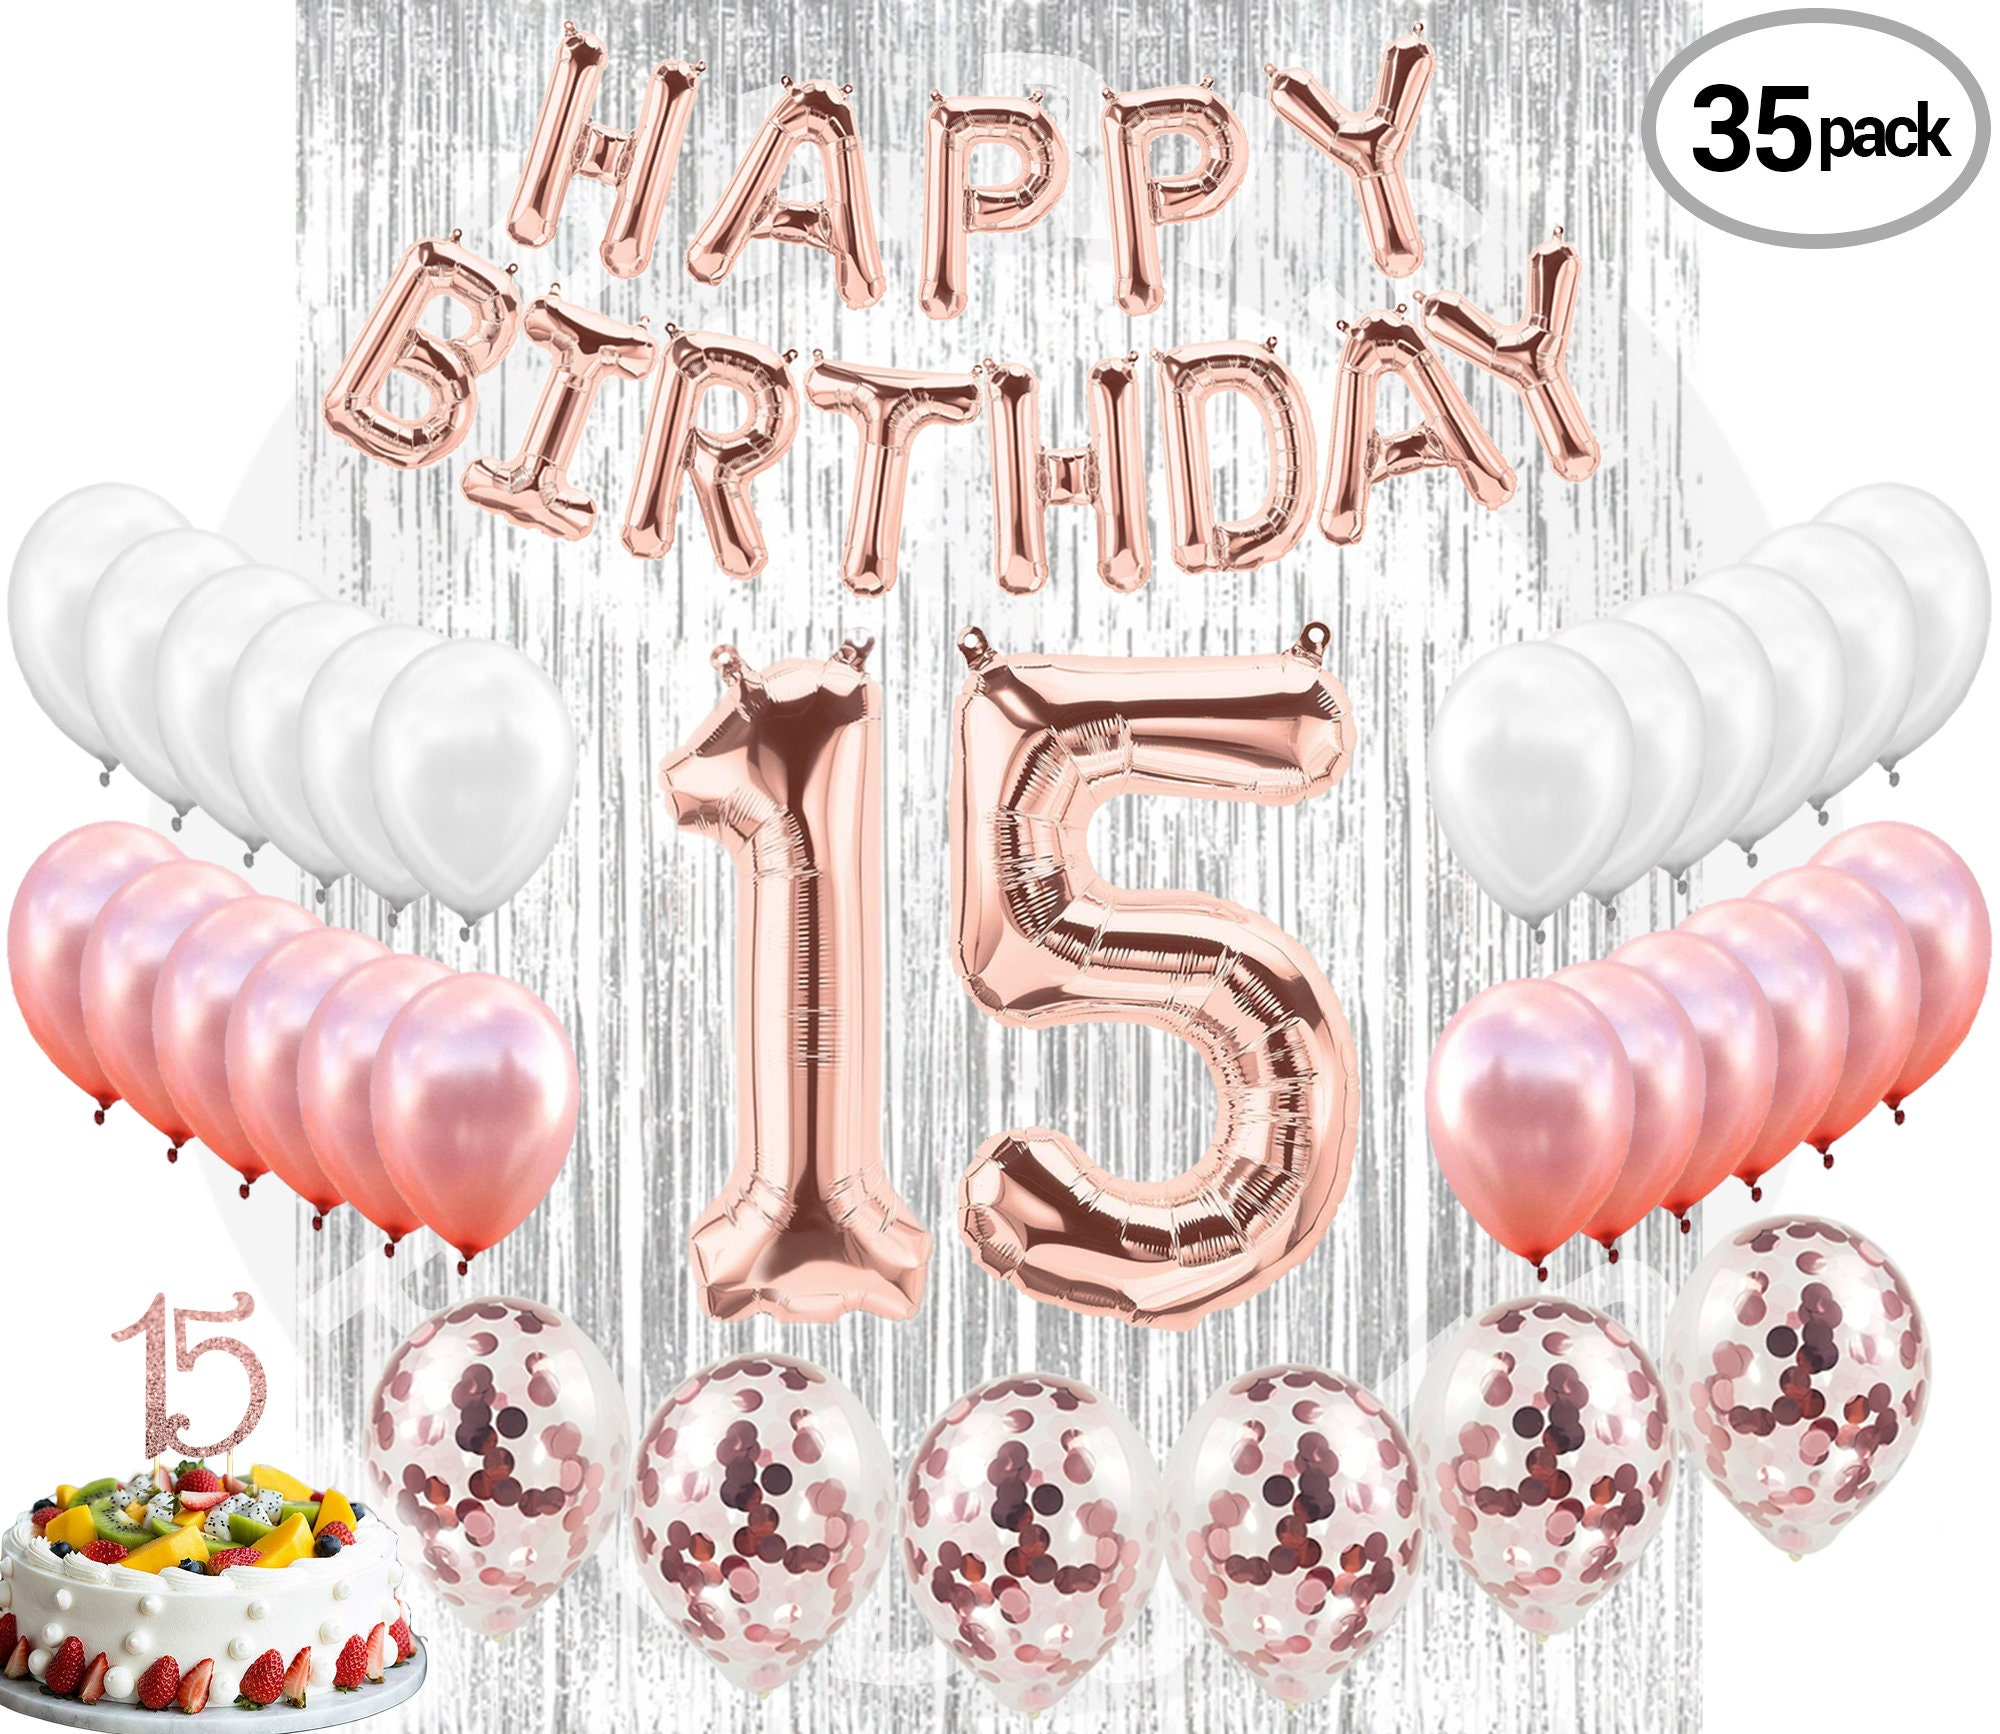 15th BIRTHDAY DECORATIONS Quinceanera Party Supplies 15 Rose Gold Banner  Confetti Balloons Curtain Backdrop Props Photos 15 BDay